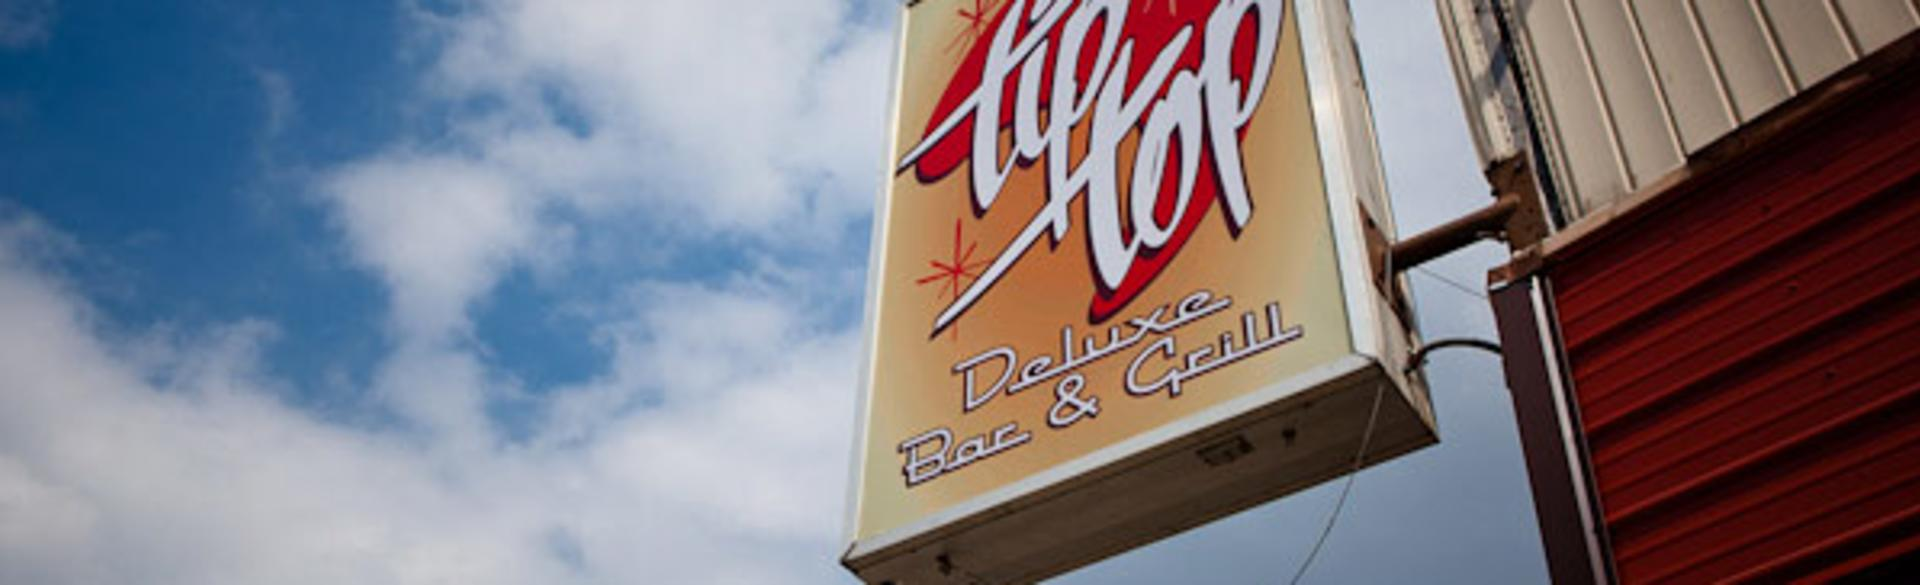 Tip Top Deluxe Bar & Grill